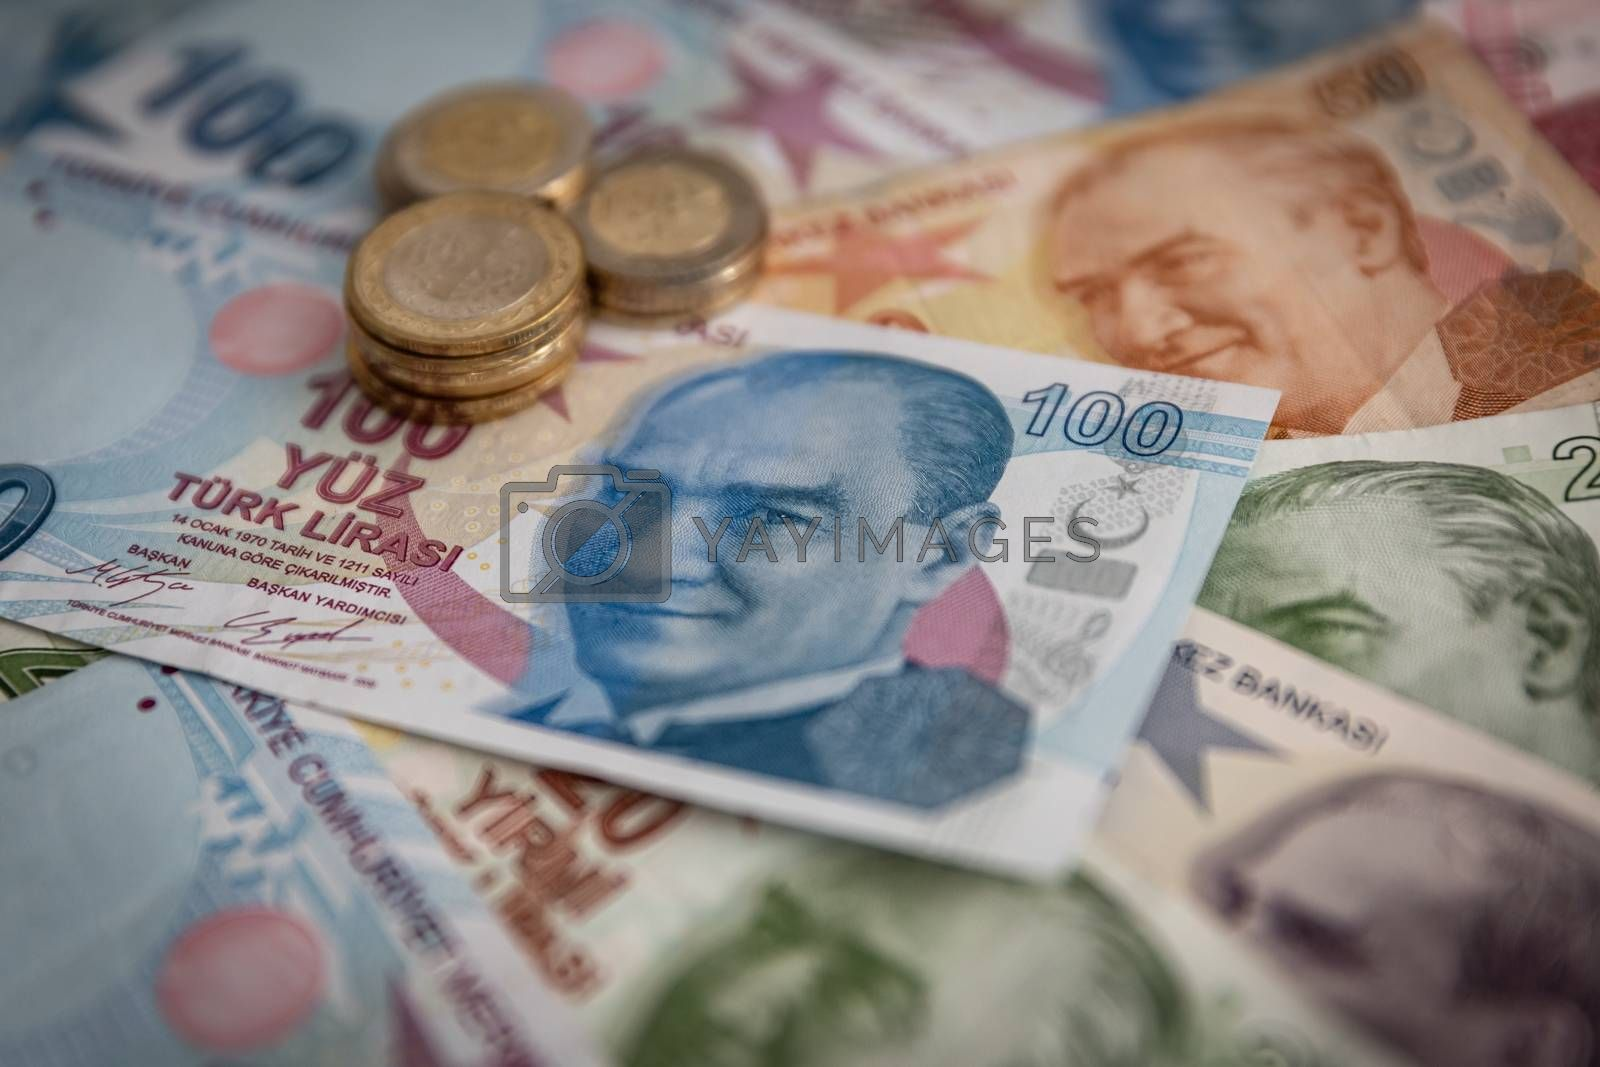 Bunch of Various Turkish Currency Lira Banknotes and Coins